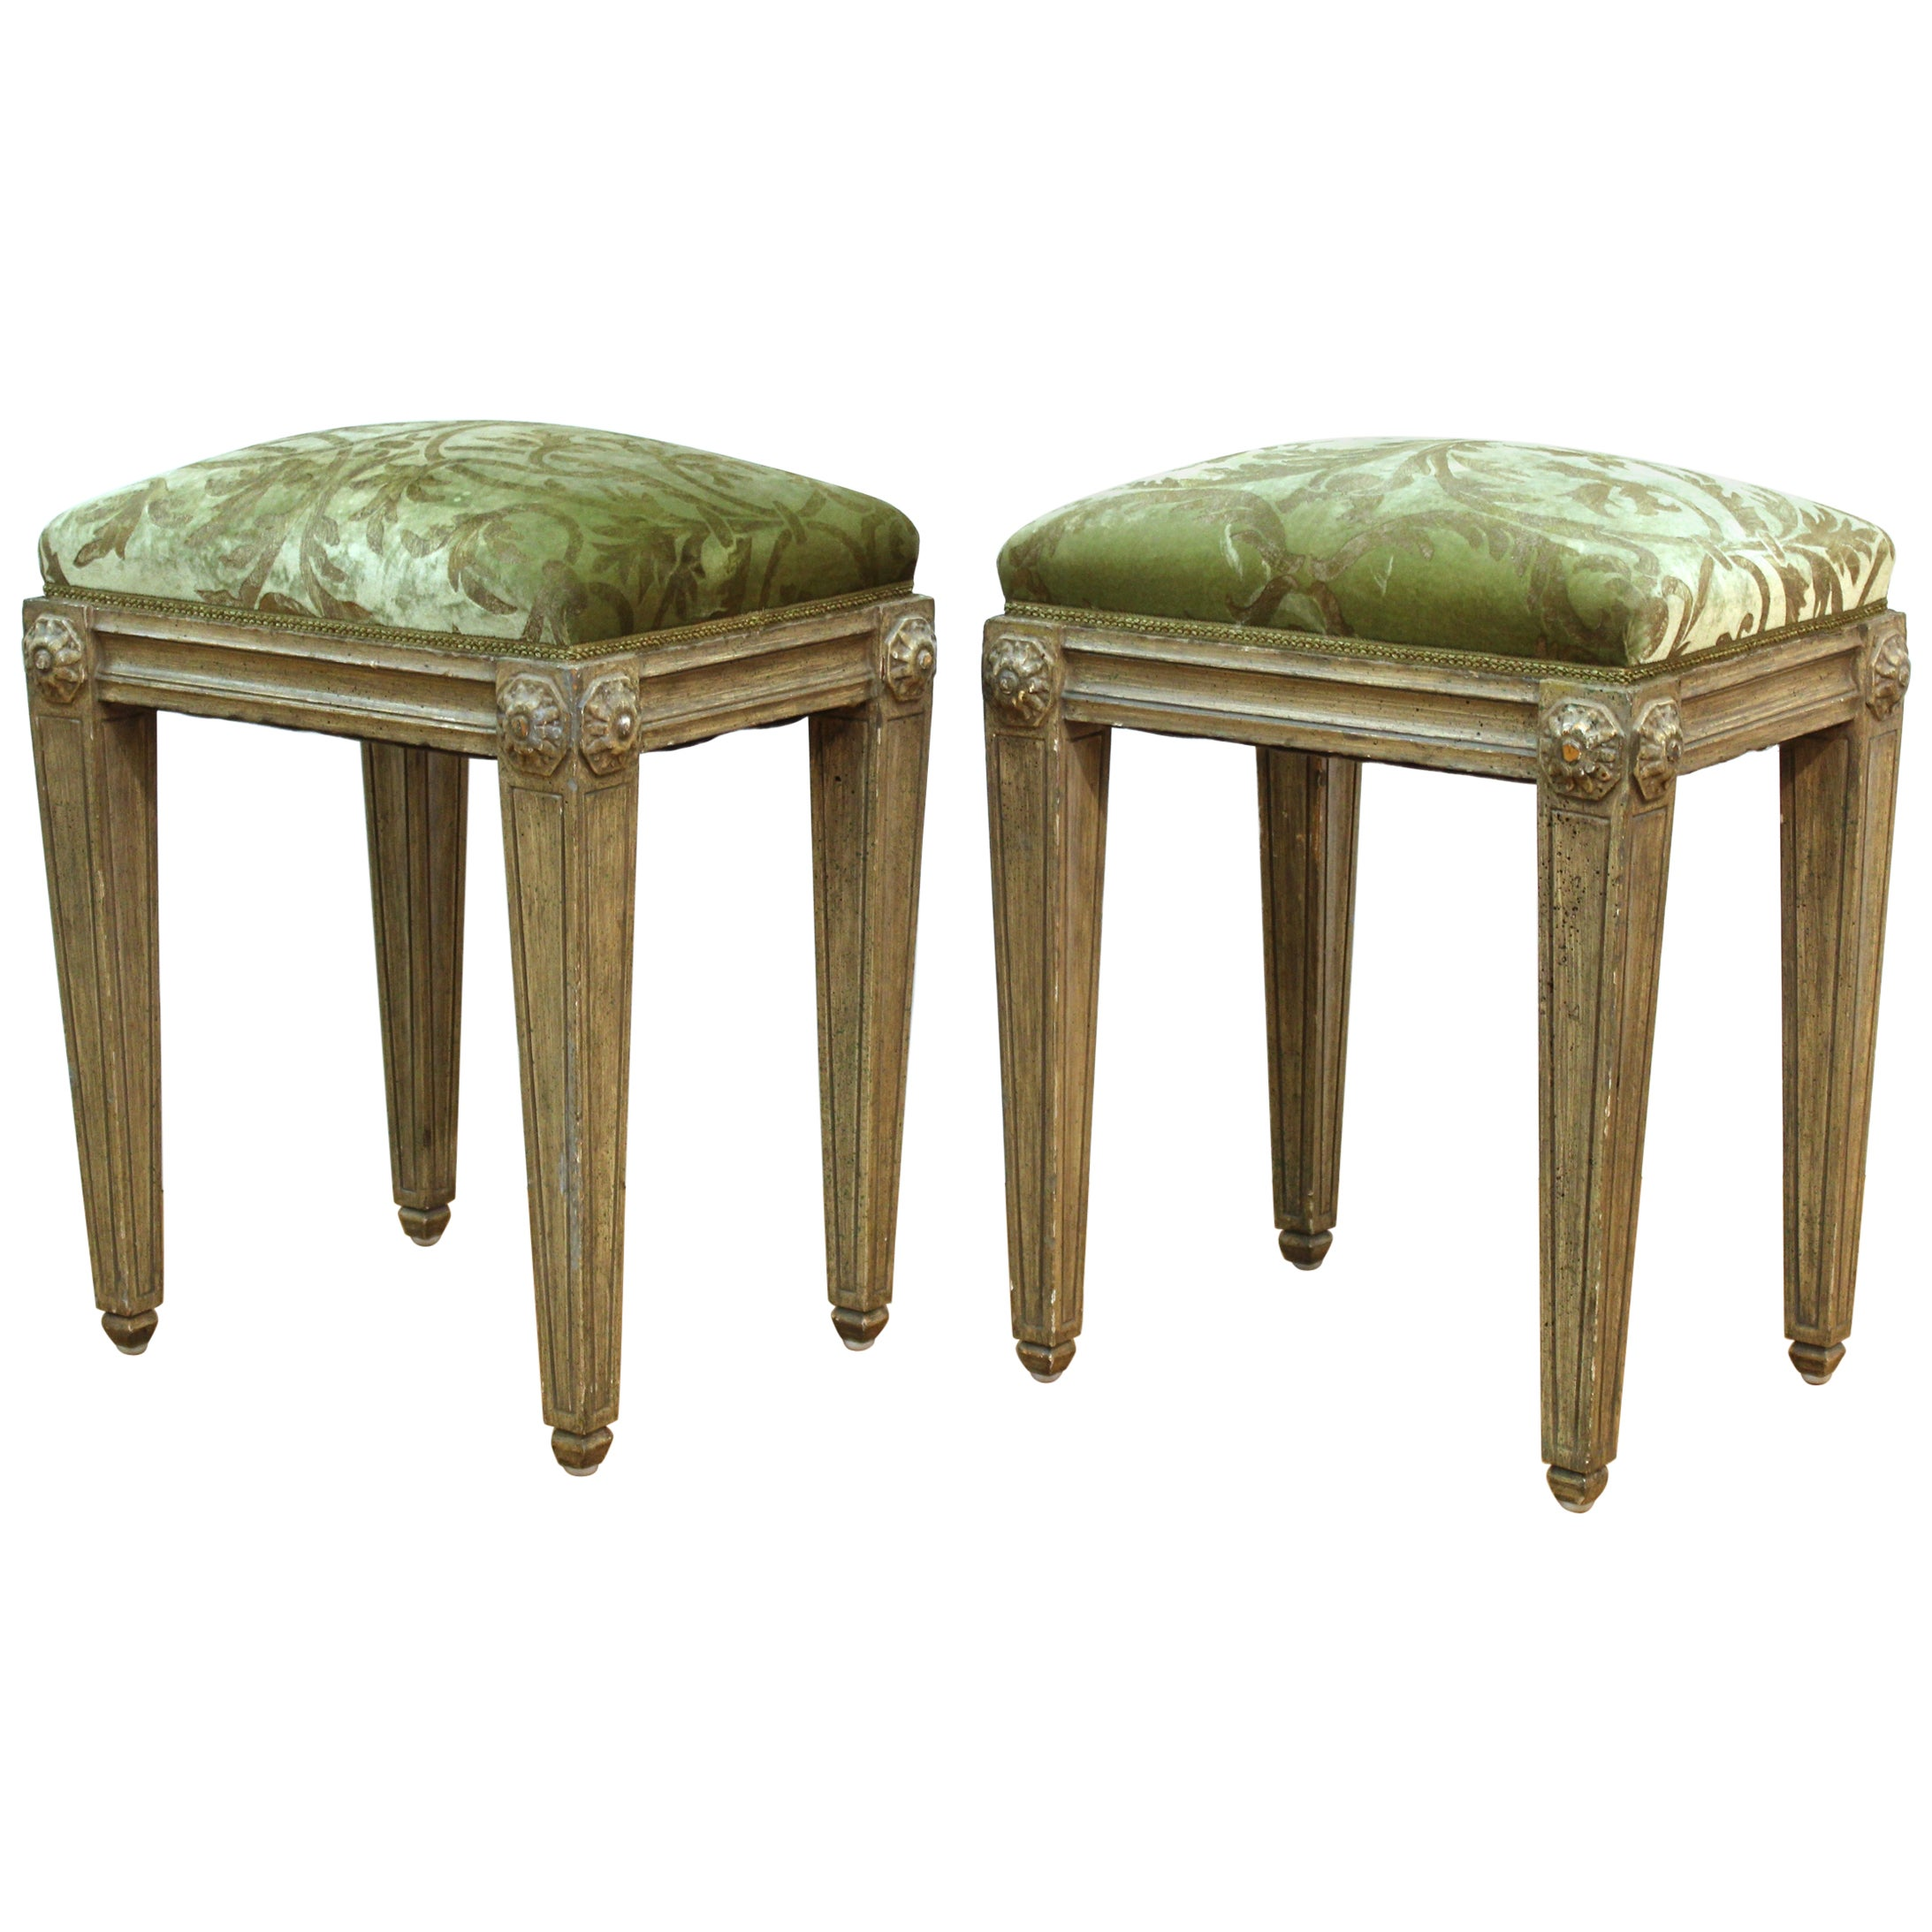 Neoclassical Revival Style Wood Benches